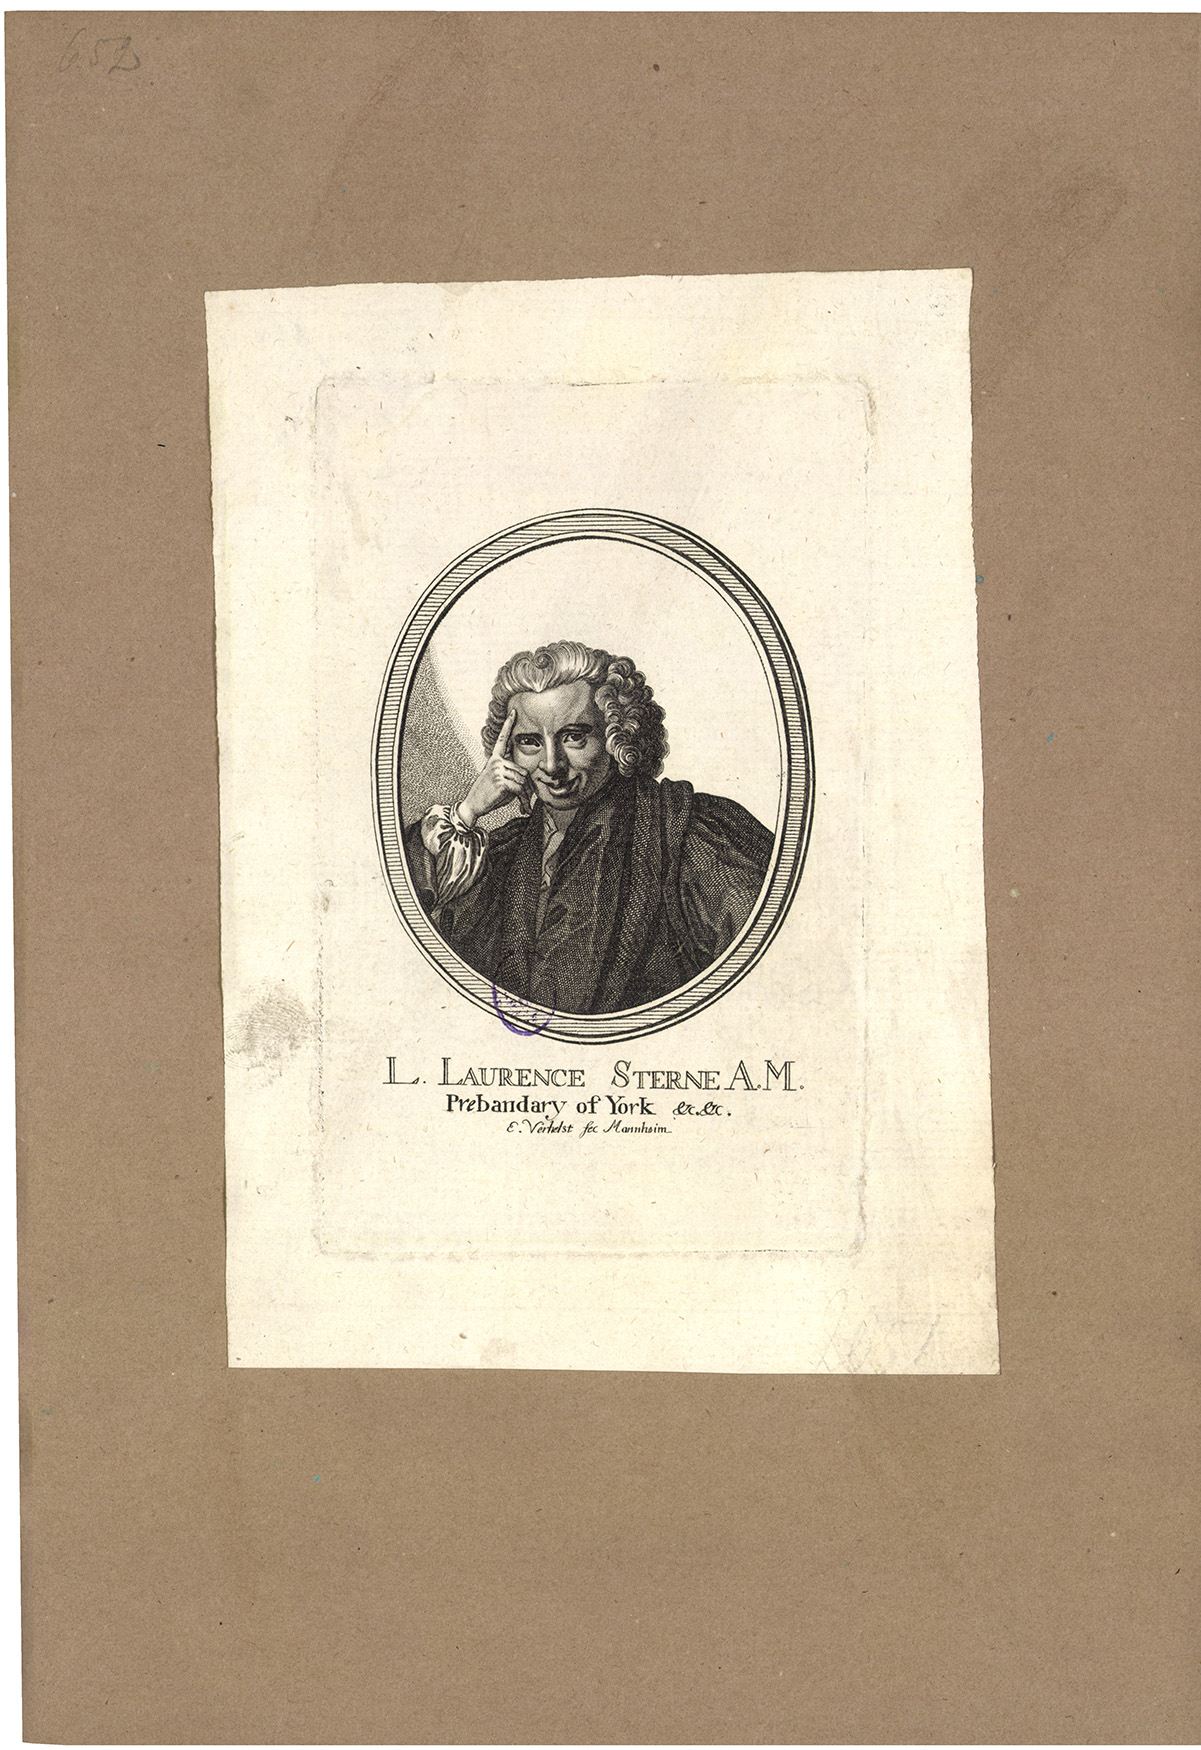 L. Laurence Sterne A. M. Prebandary of York